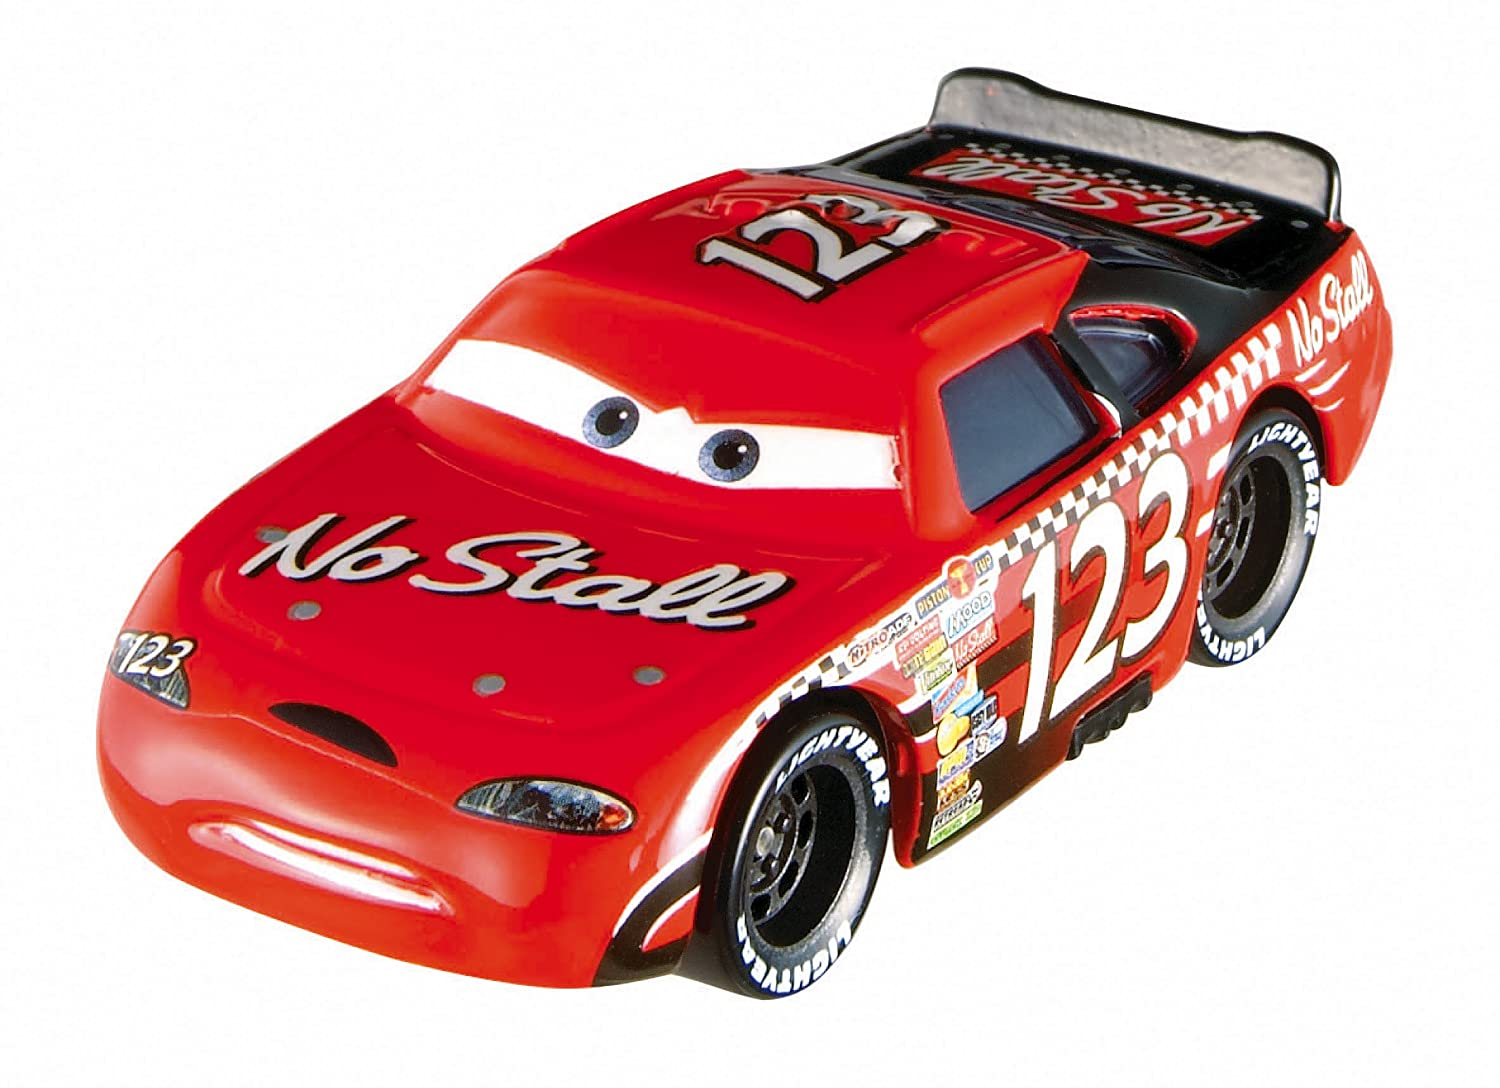 No Stall No.123 Disney Pixar Cars Acer with Headset (Lemons Series,  1 of 8)